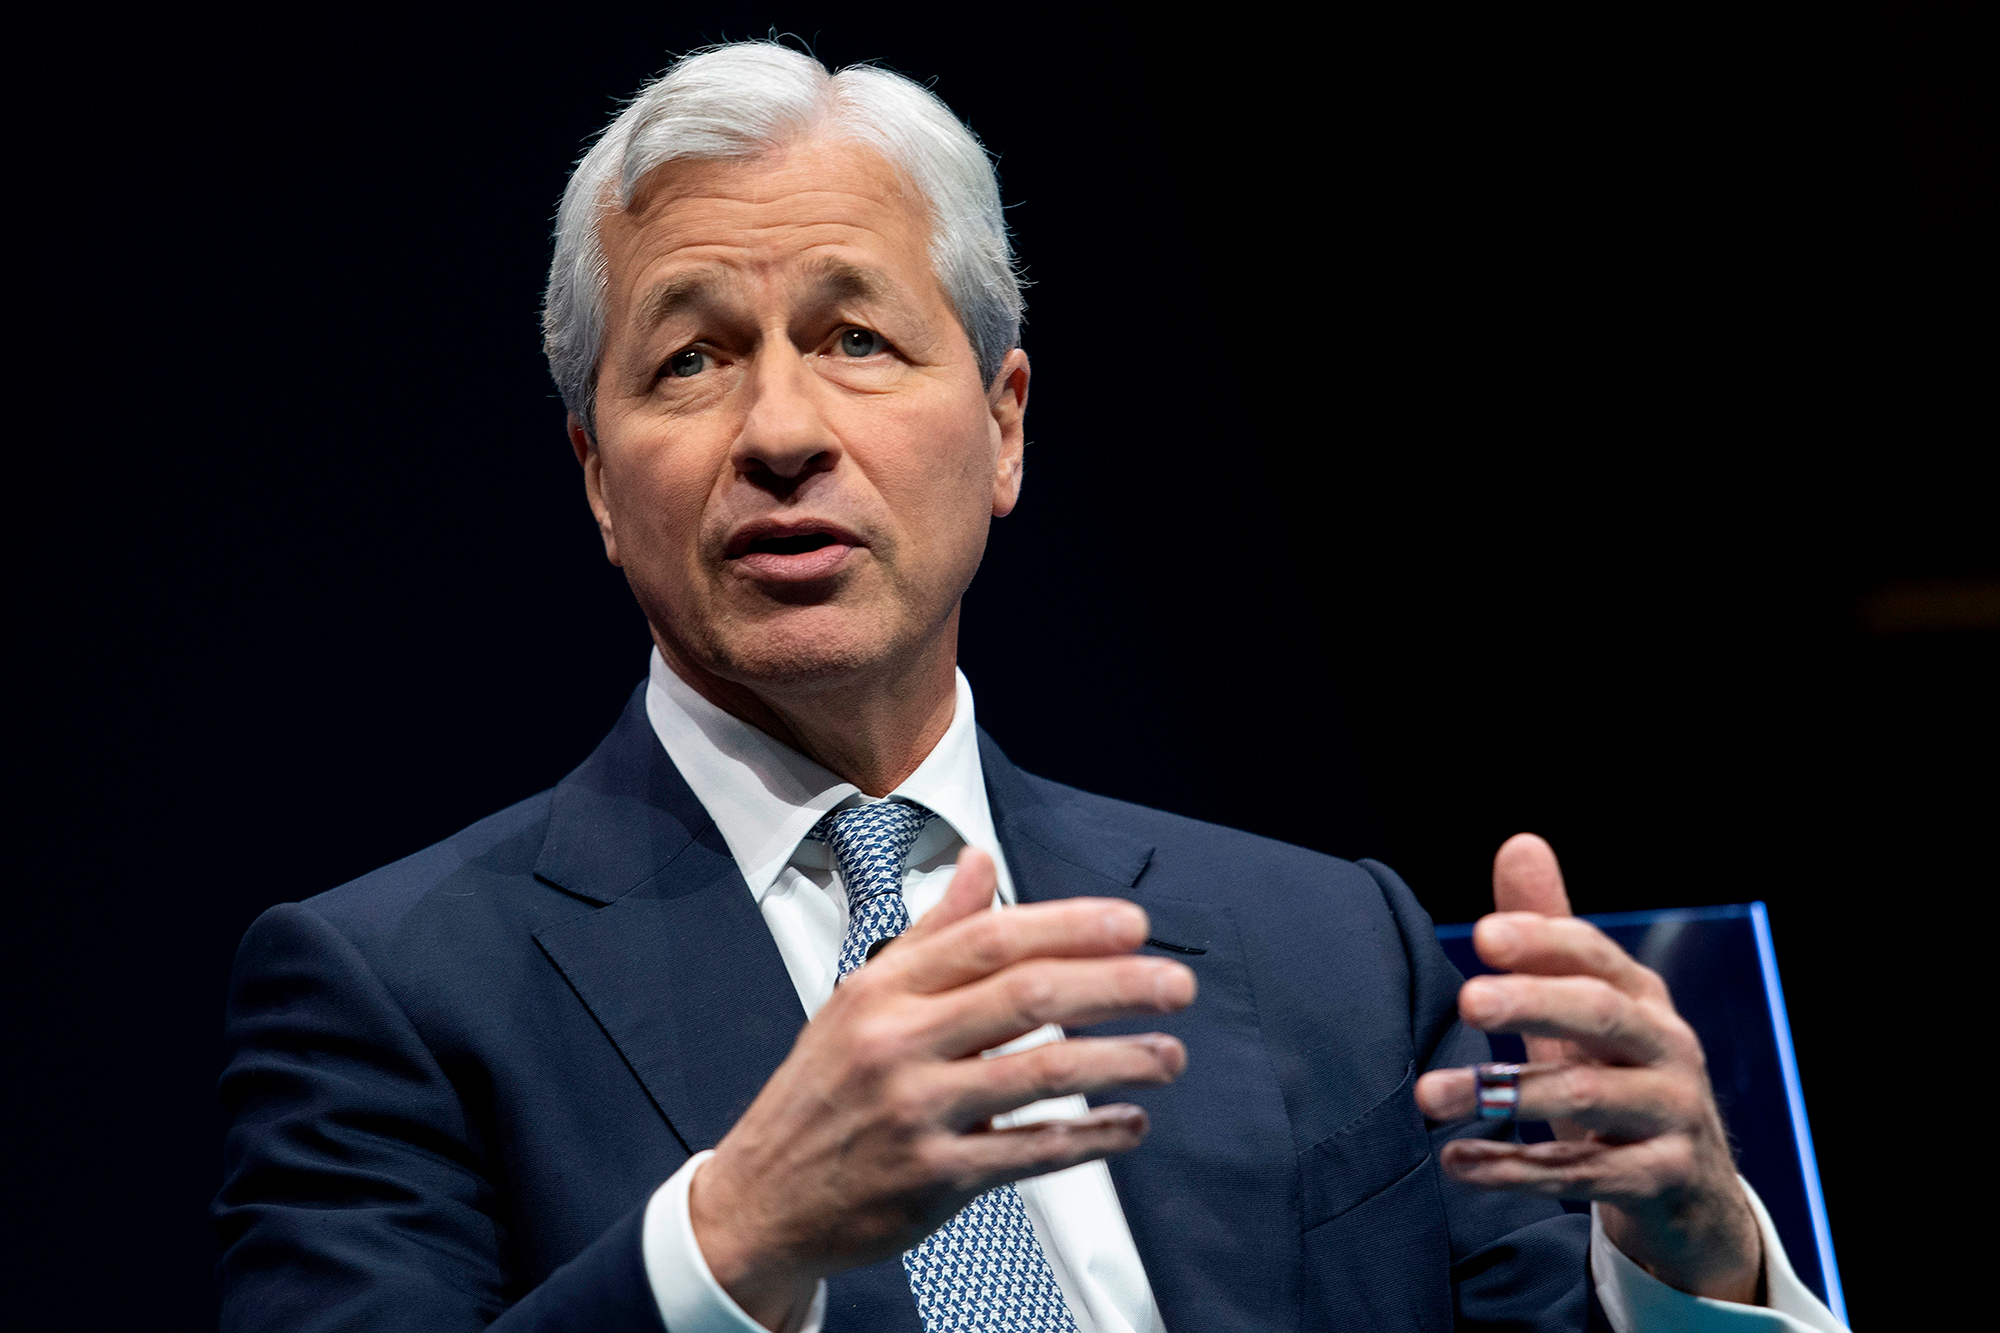 JPMorgan Chase just reported a record quarterly profit. But its CEO is still nervous